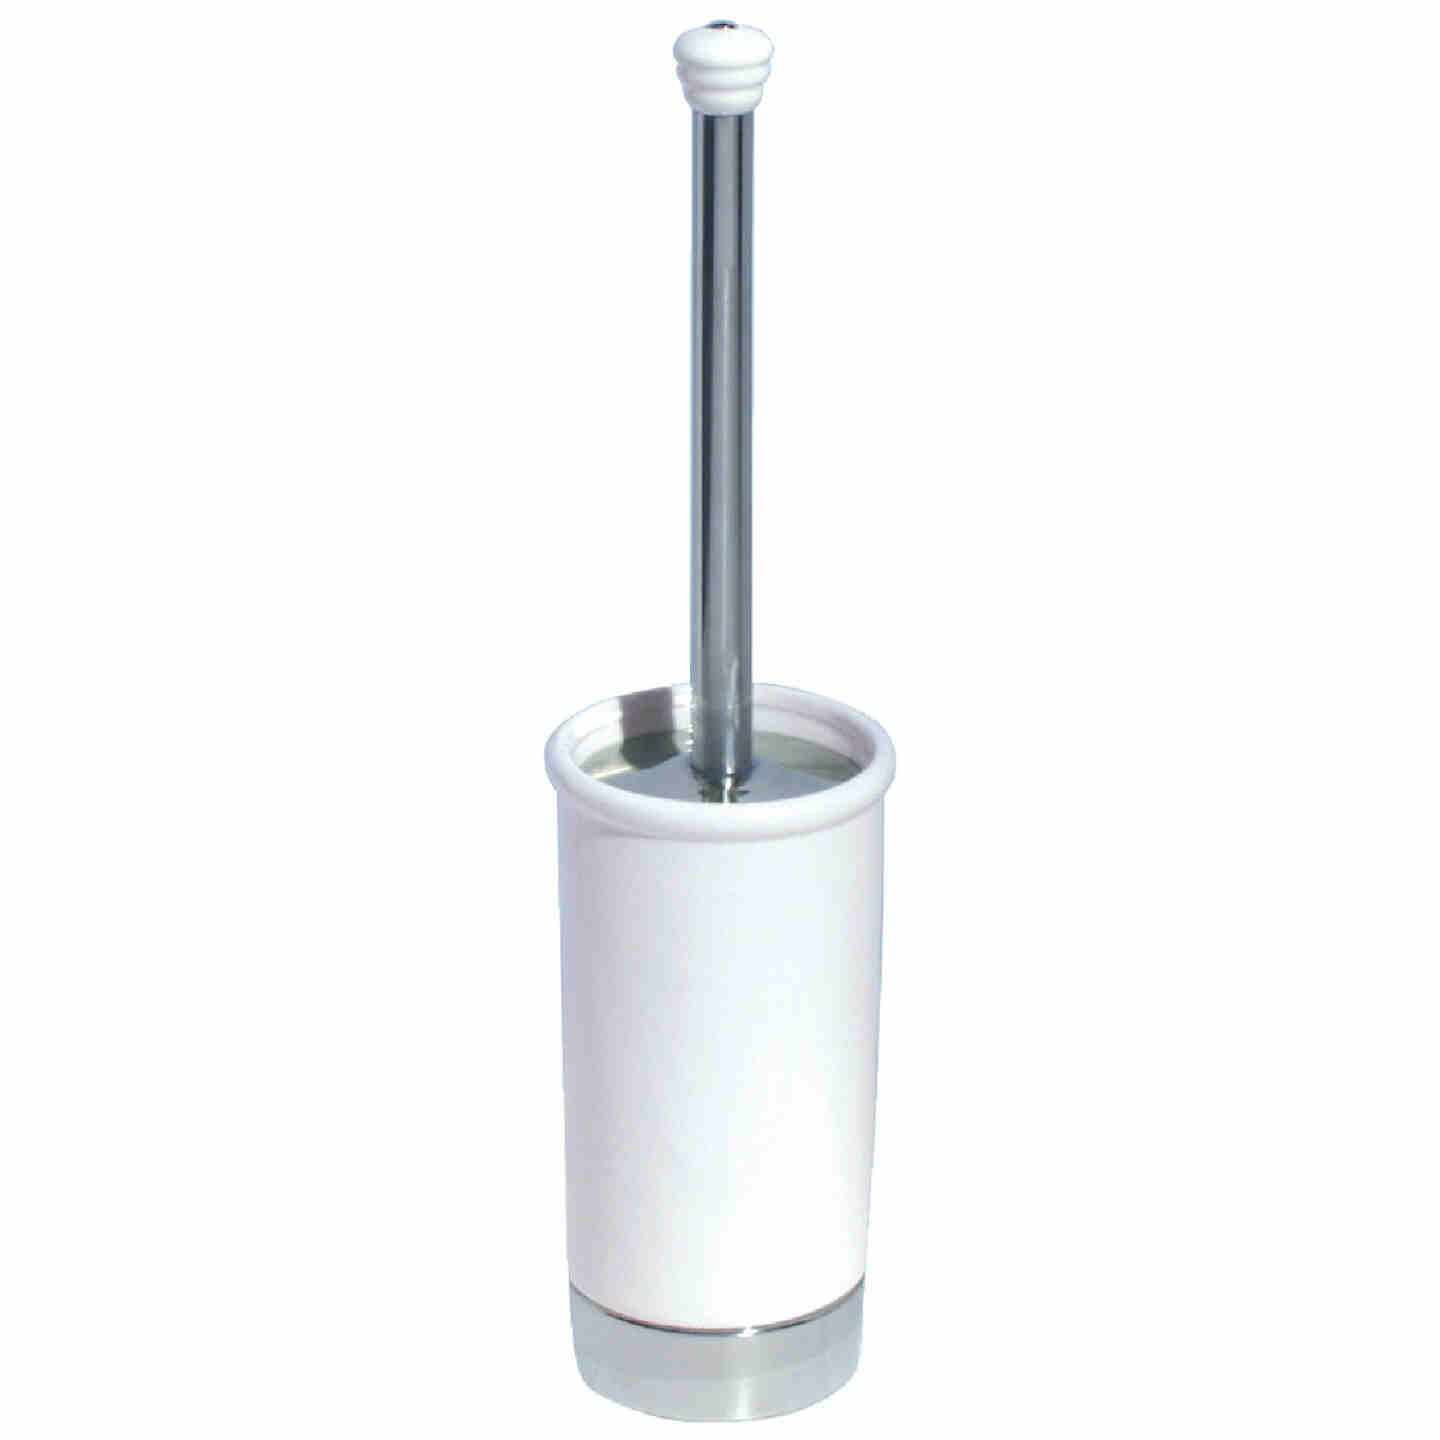 InterDesign York 17.5 In. Toilet Bowl Brush With Caddy Image 1